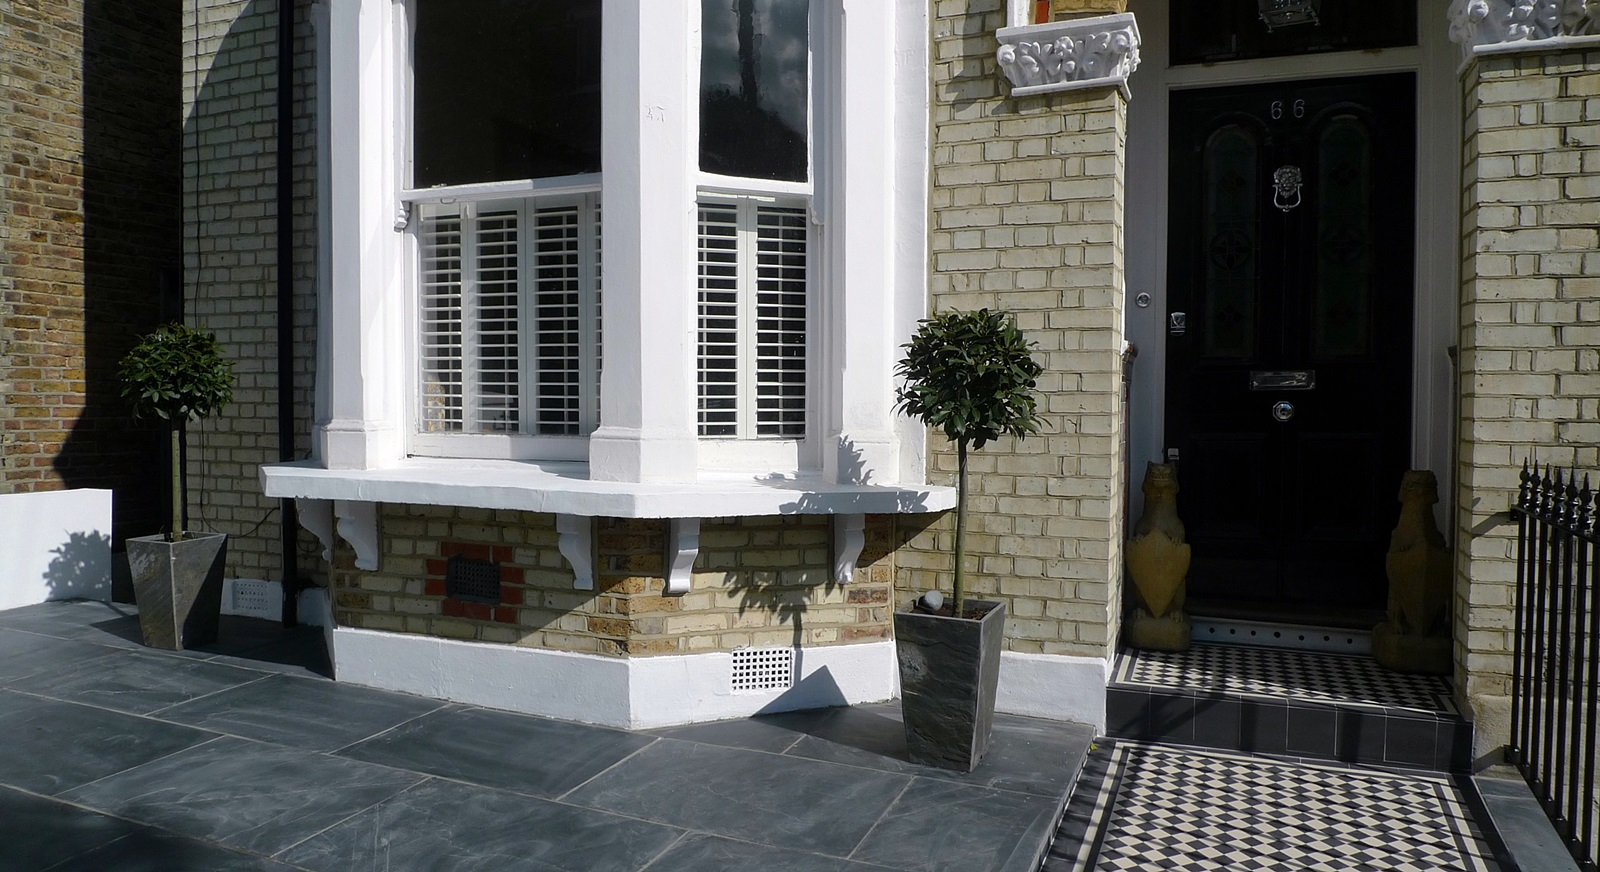 Front garden wall rail gate Victorian mosaic slate paving bespoke bin store York stone caps Balham Clapham Dulwich Tooting London (4)